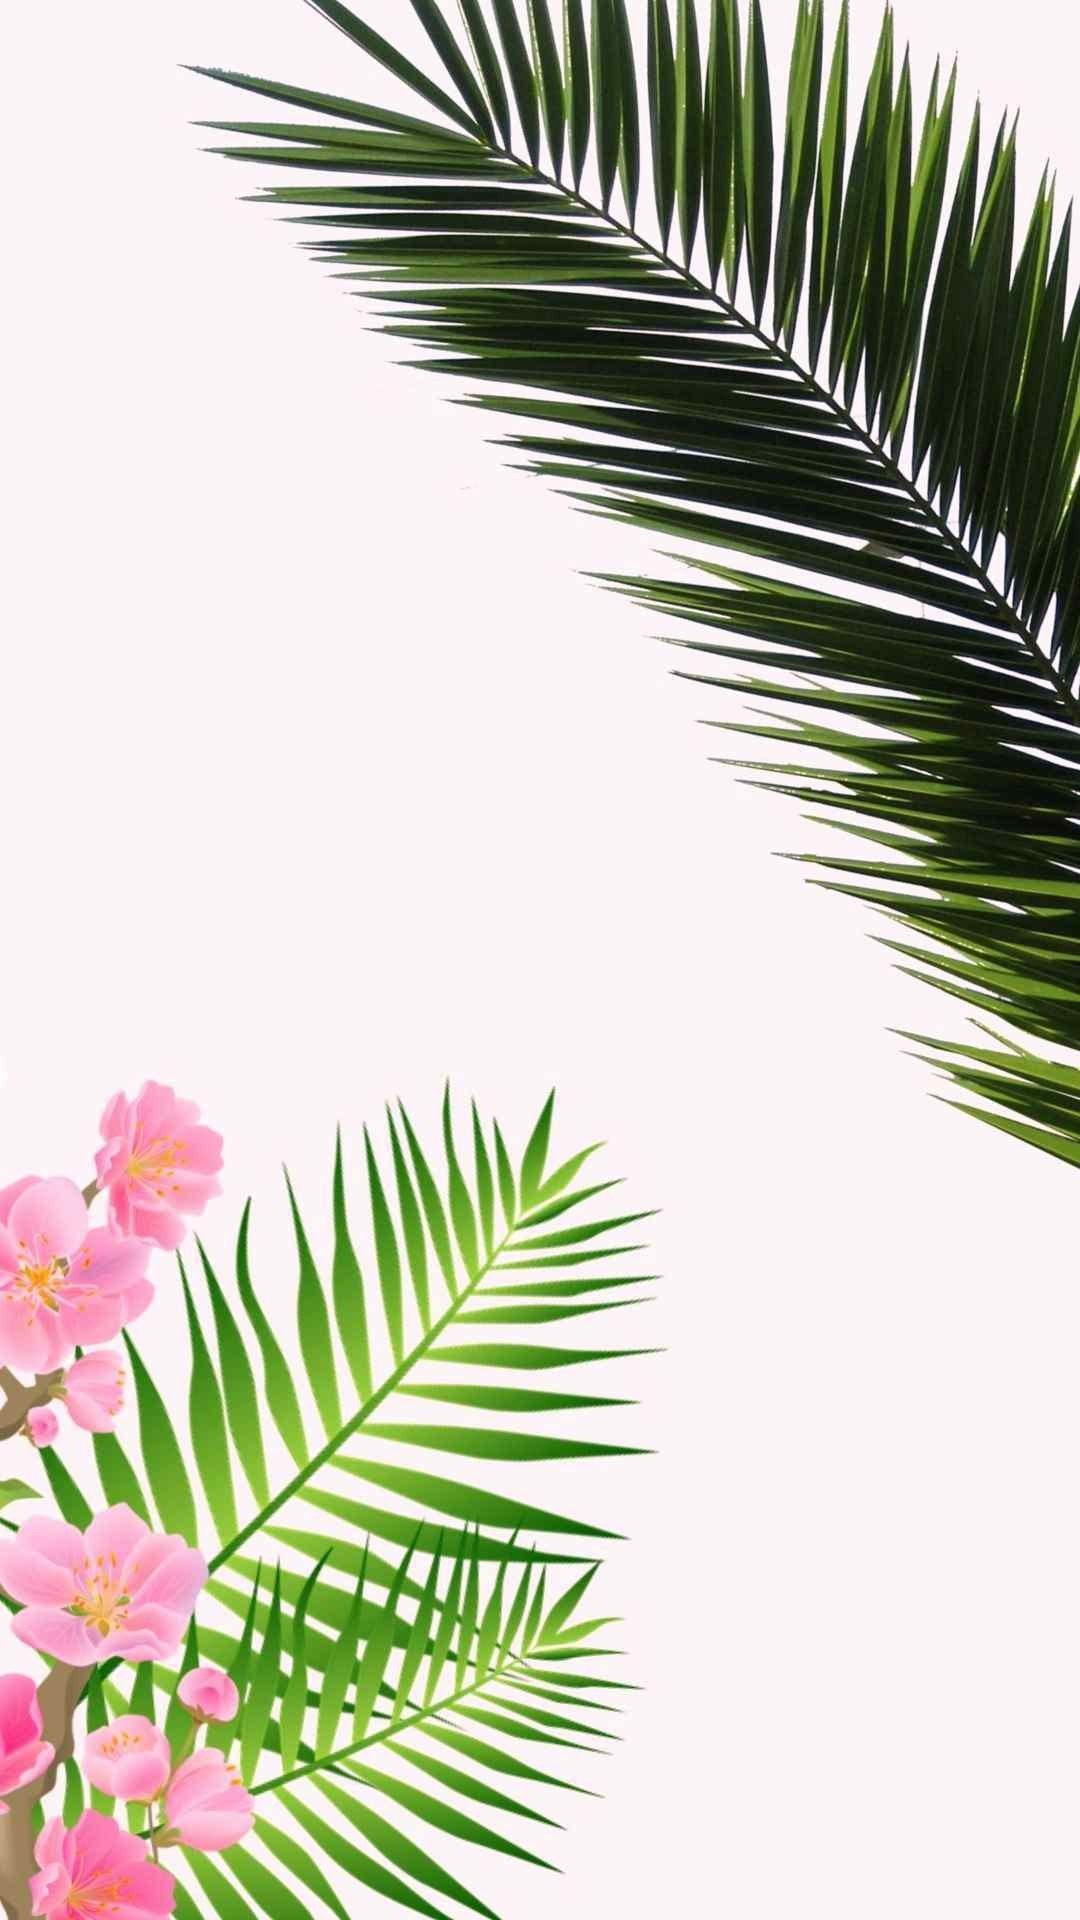 Palm Leaves Iphone Wallpapers Top Free Palm Leaves Iphone Backgrounds Wallpaperaccess Tropical leaves free background free photo. palm leaves iphone wallpapers top